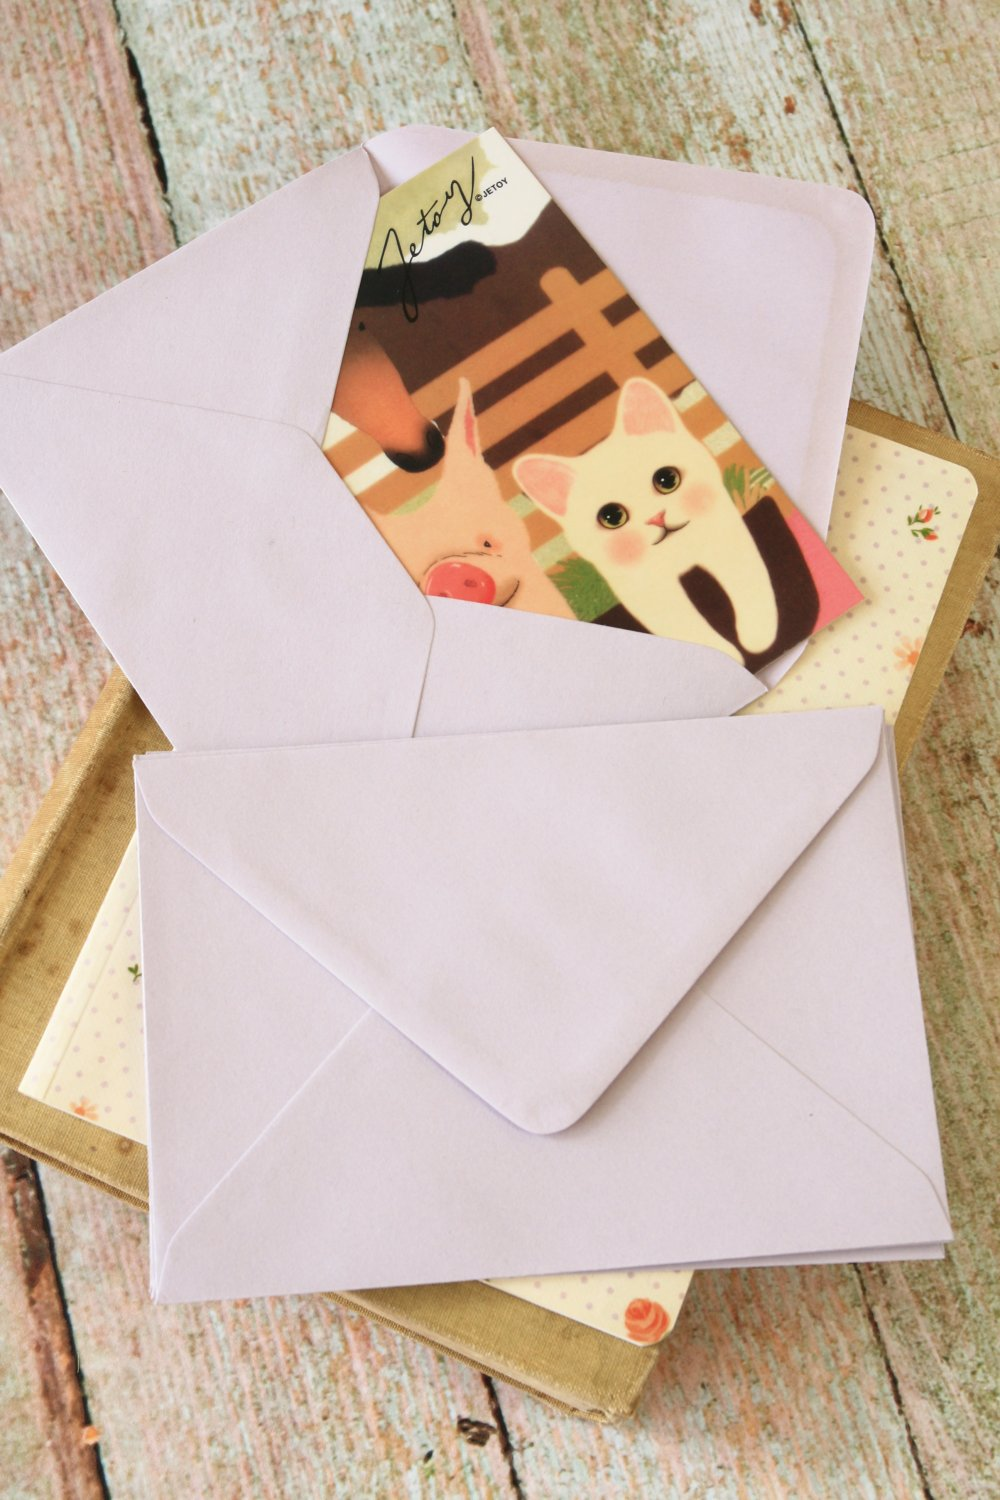 Lavender plain C6 banker envelopes